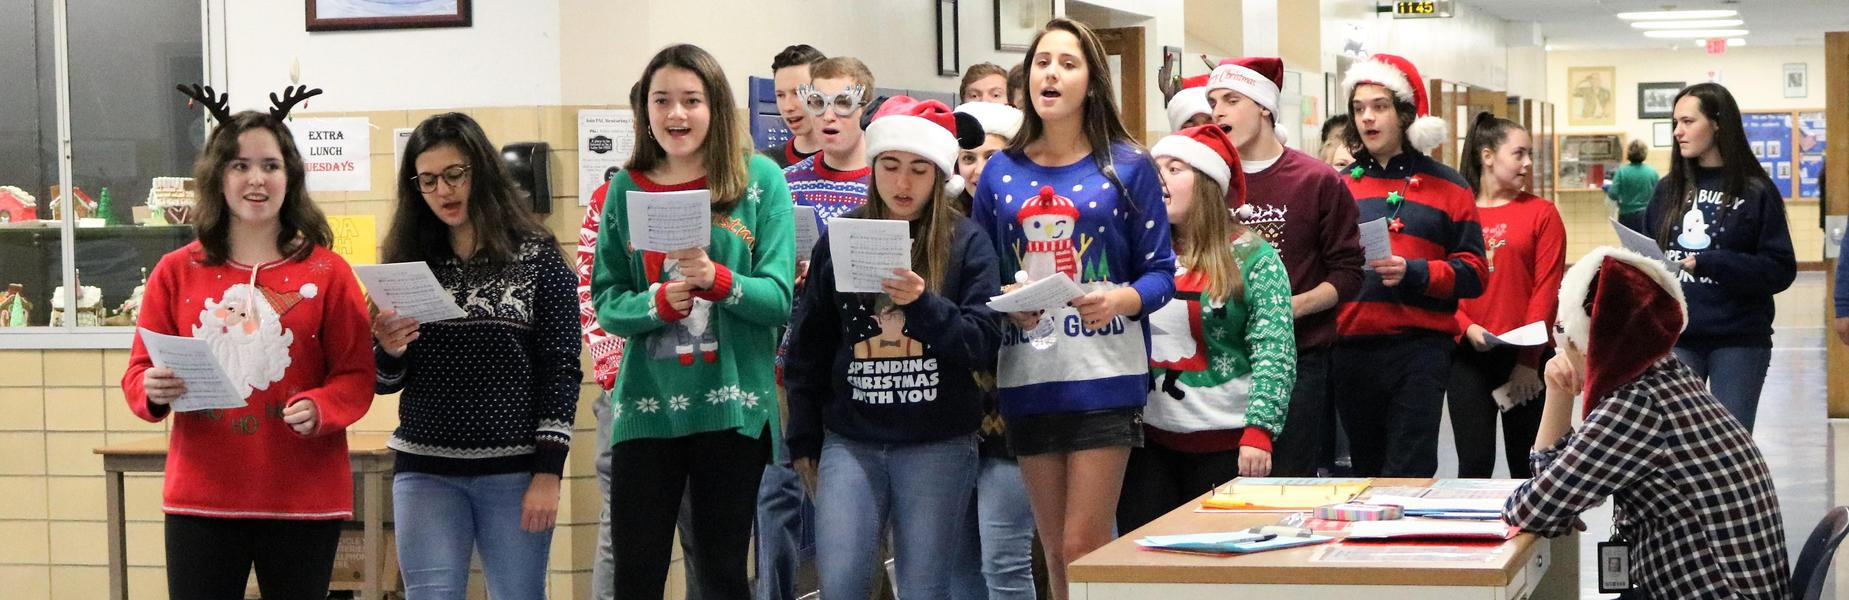 The WHS Chorale takes to the hallways to sing carols to fellow students and staff.